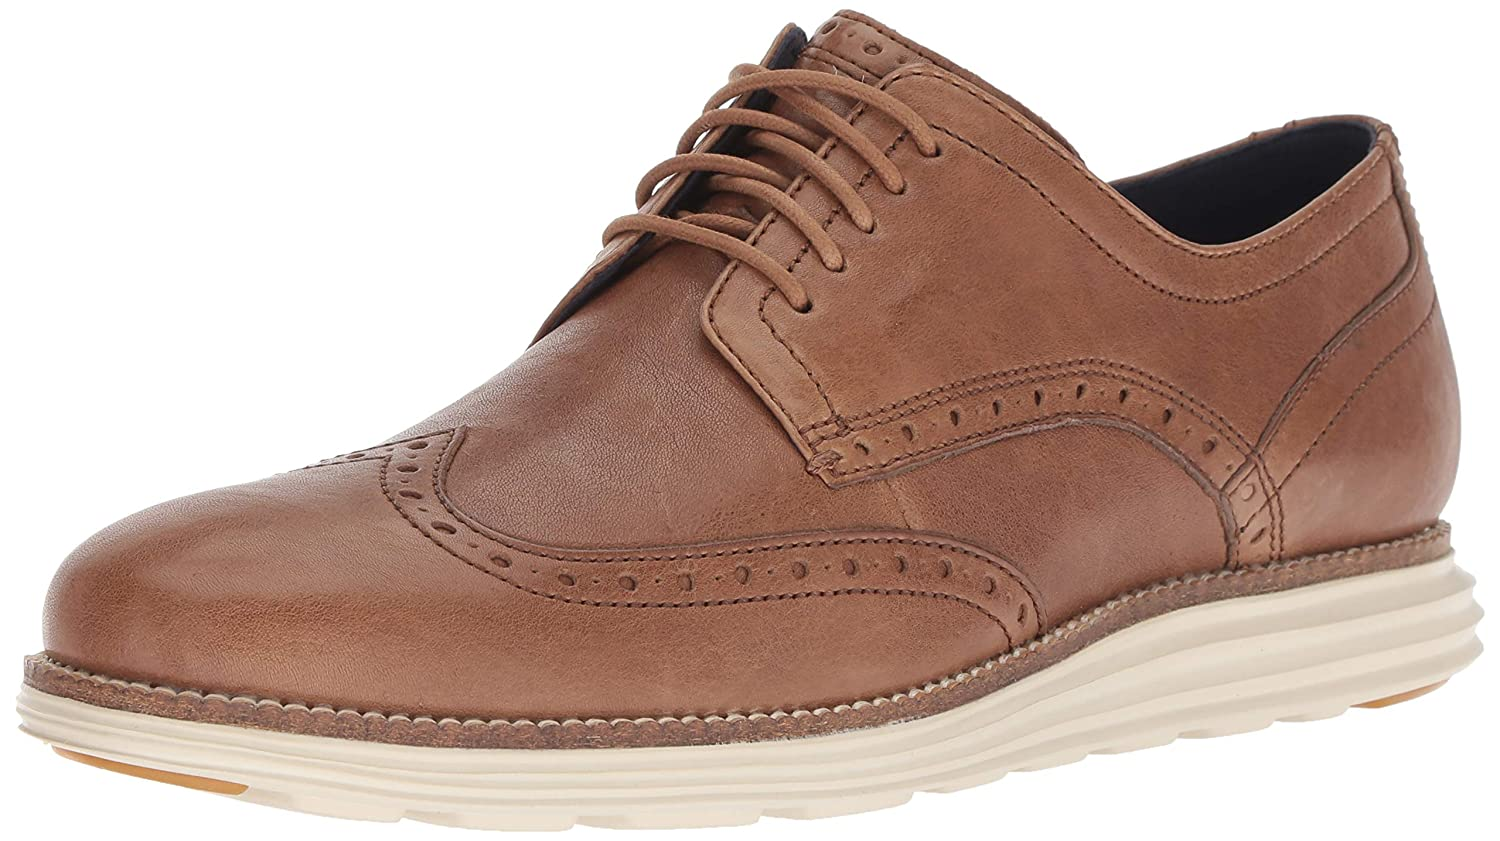 Dogwood.ivory Cole Haan Men's Original Grand Shortwing Oxfords